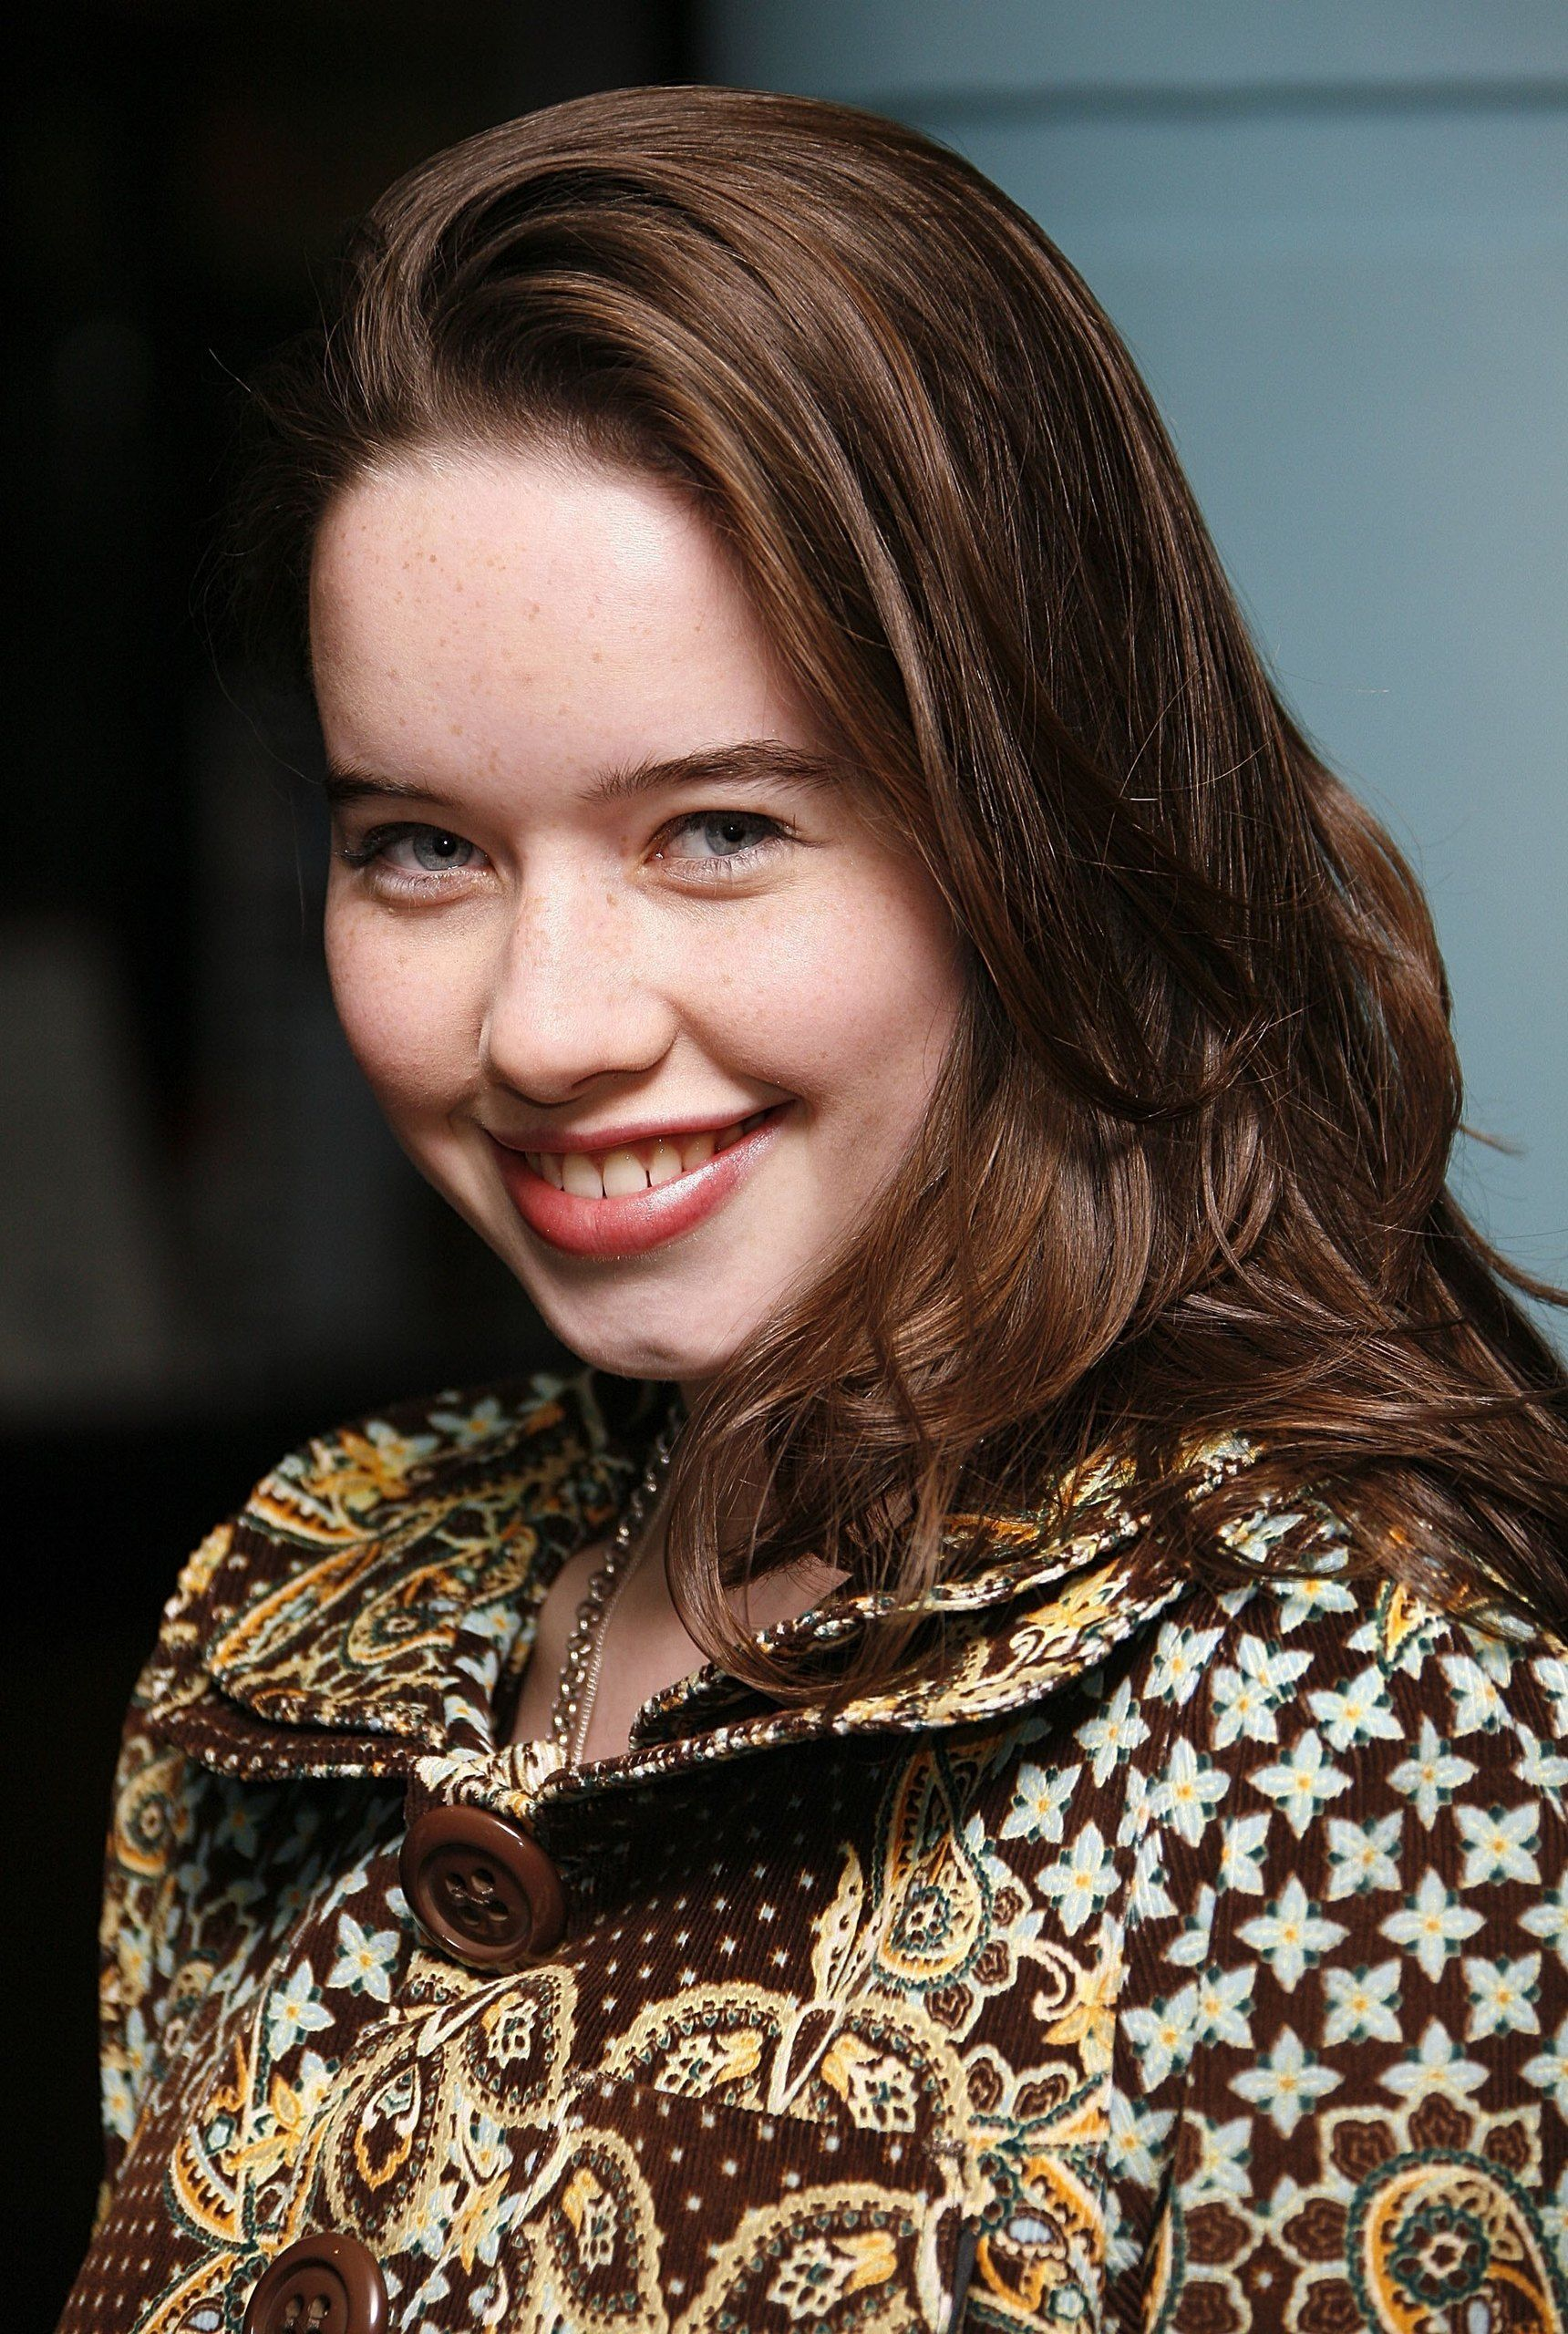 picture Anna Popplewell (born 1988)